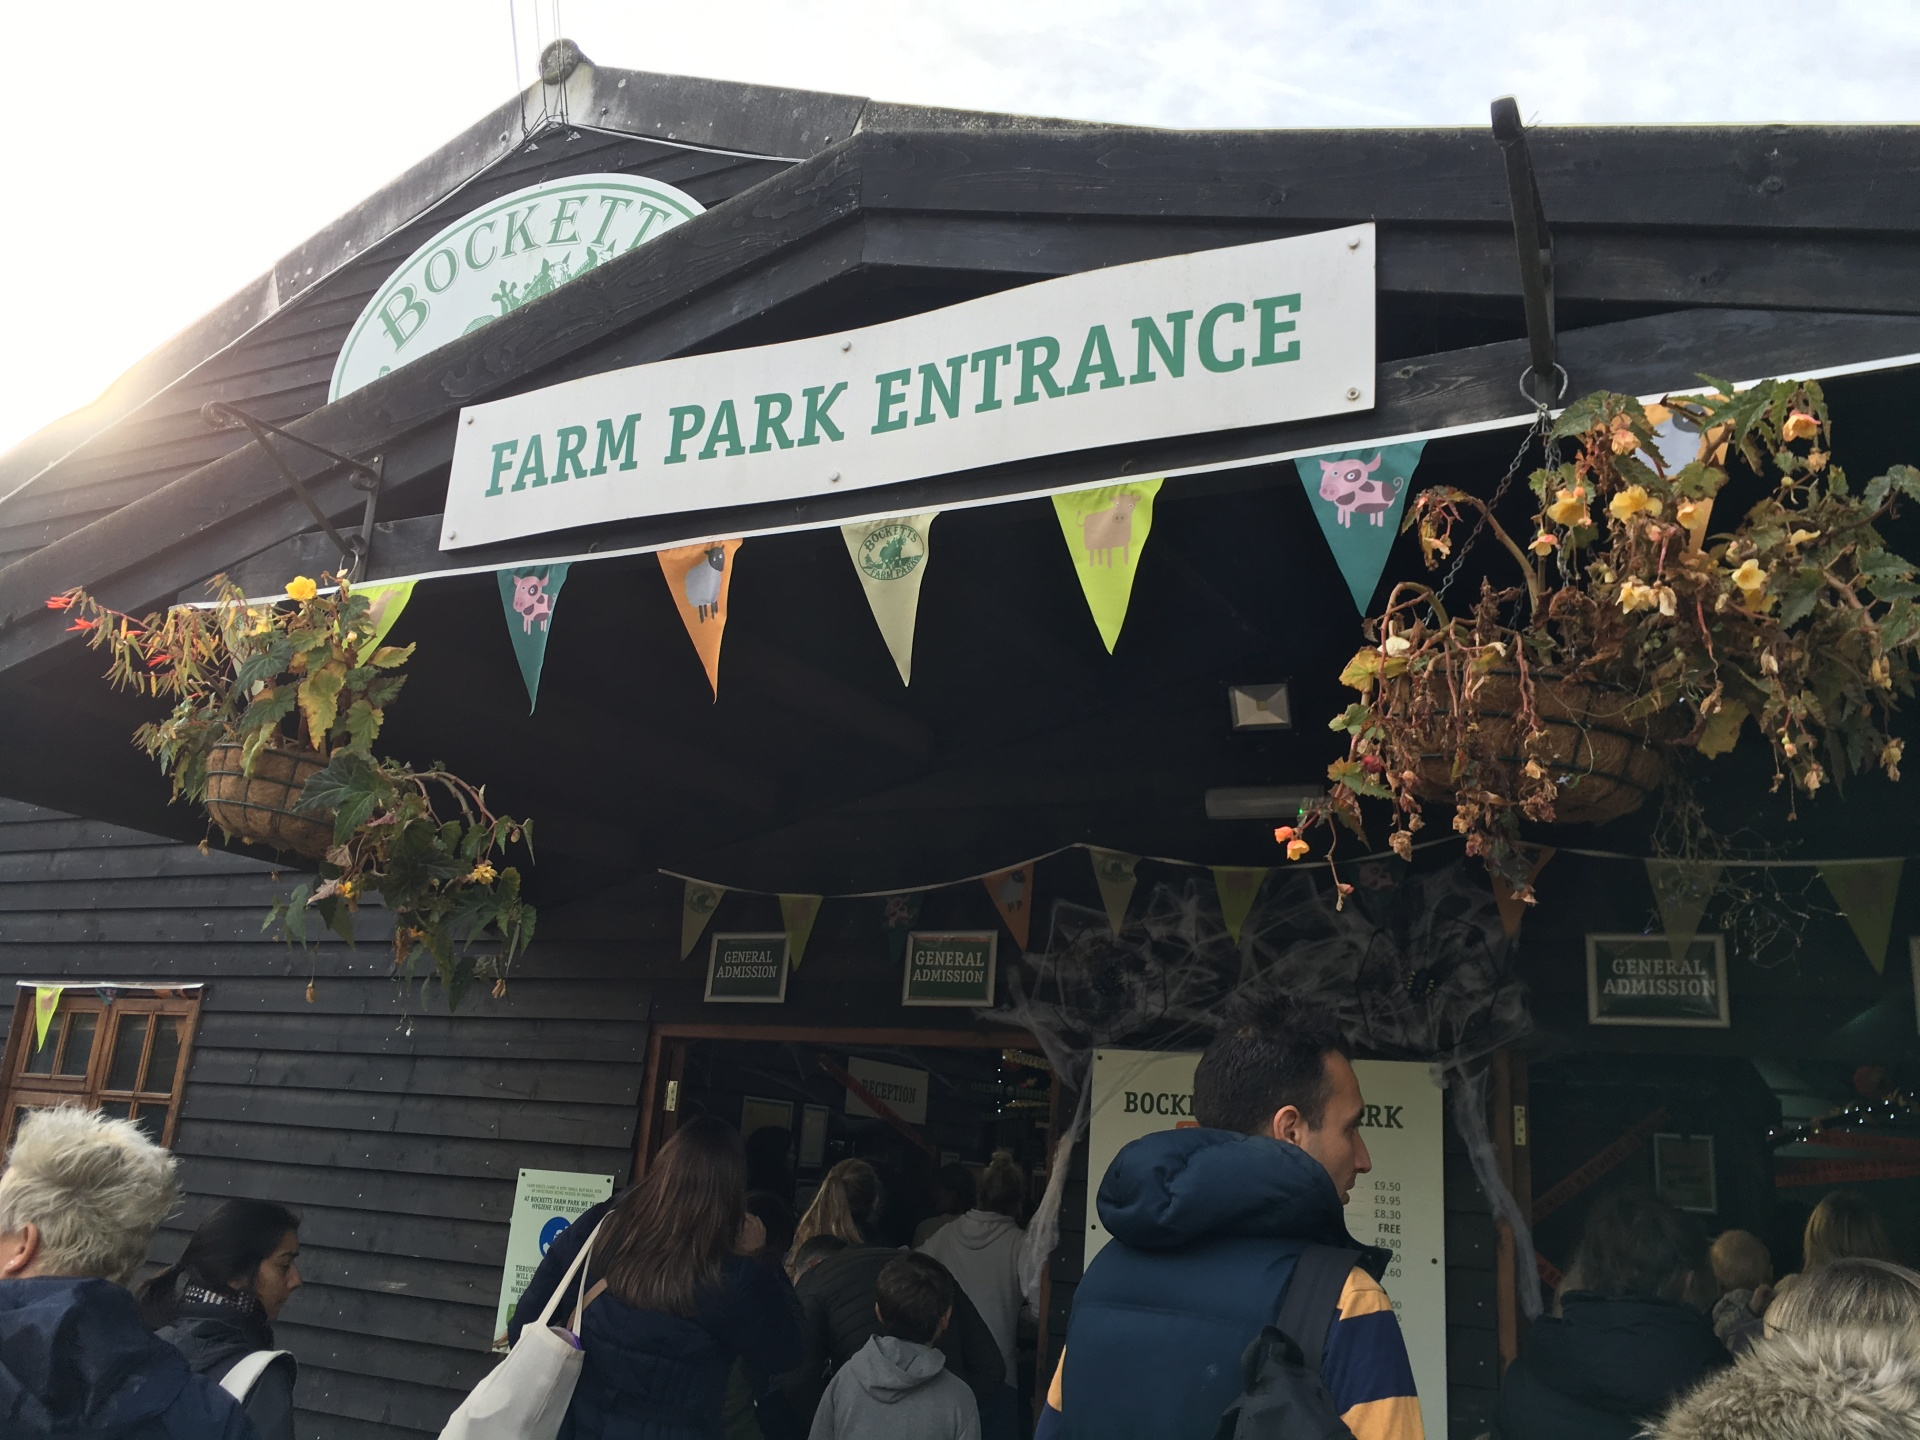 A Day on the Farm: Surrey Life at Bocketts Farm, Leatherhead